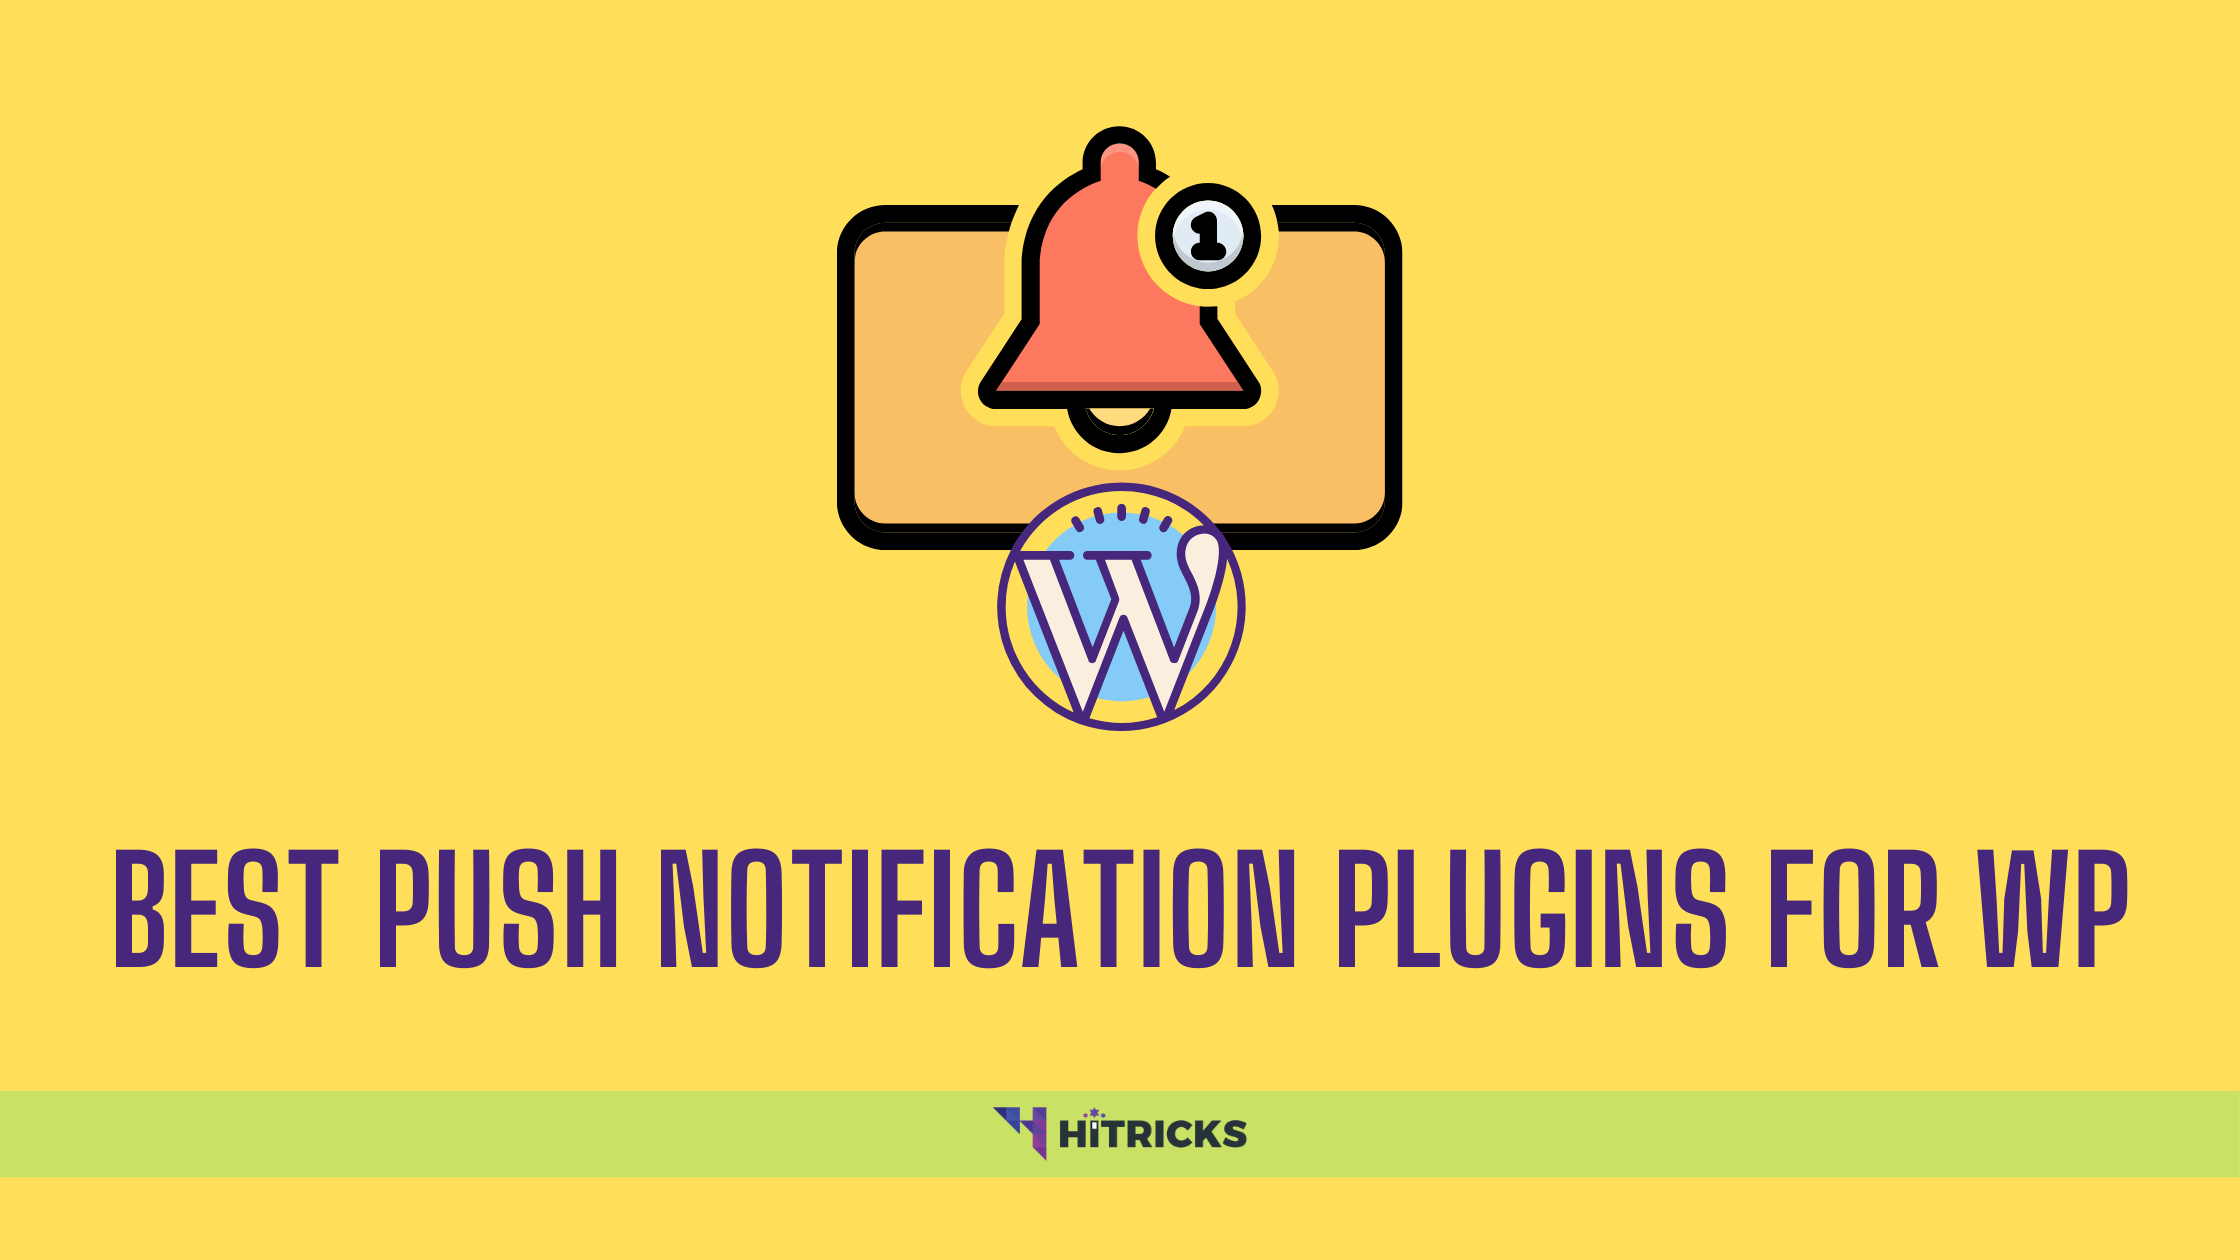 Best Push Notification Plugins For WordPress